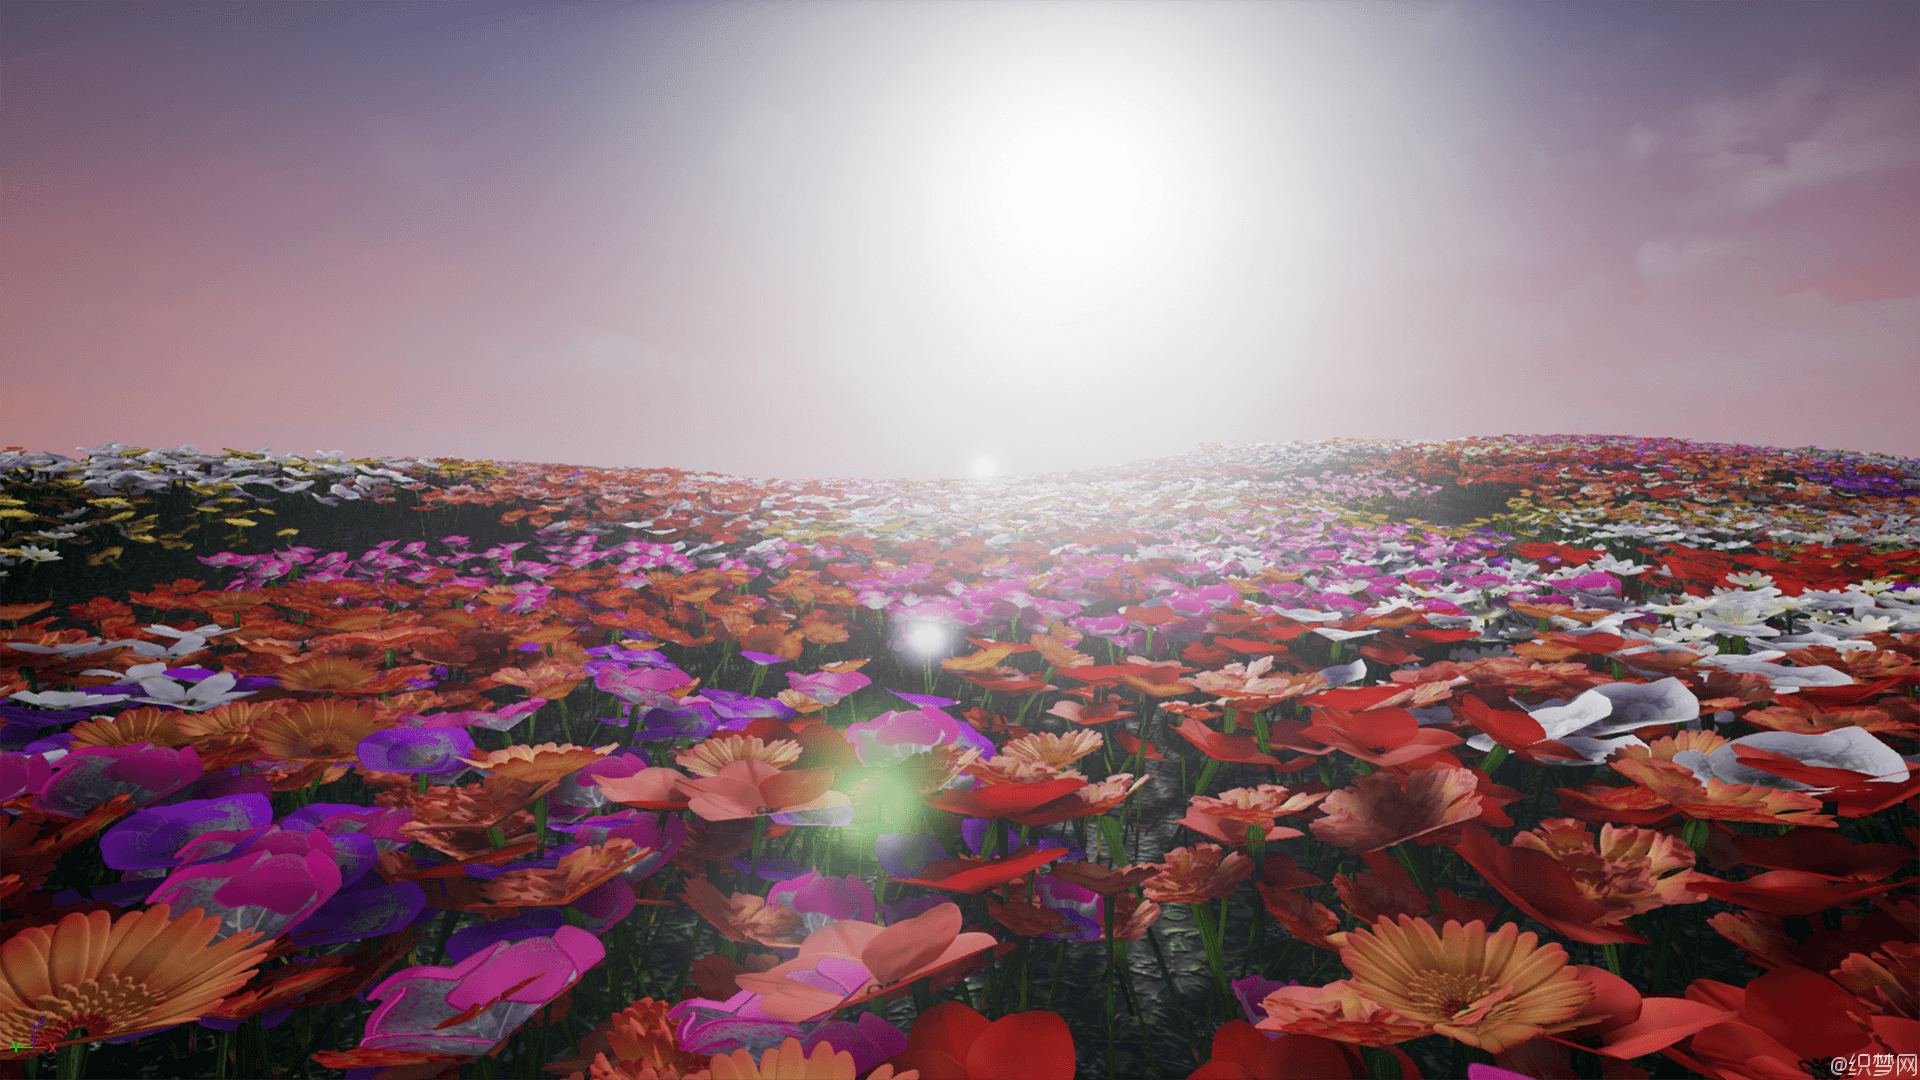 虚幻引擎4植物3D模型包 - Unreal Engine 4 Marketplace - Plants Pack